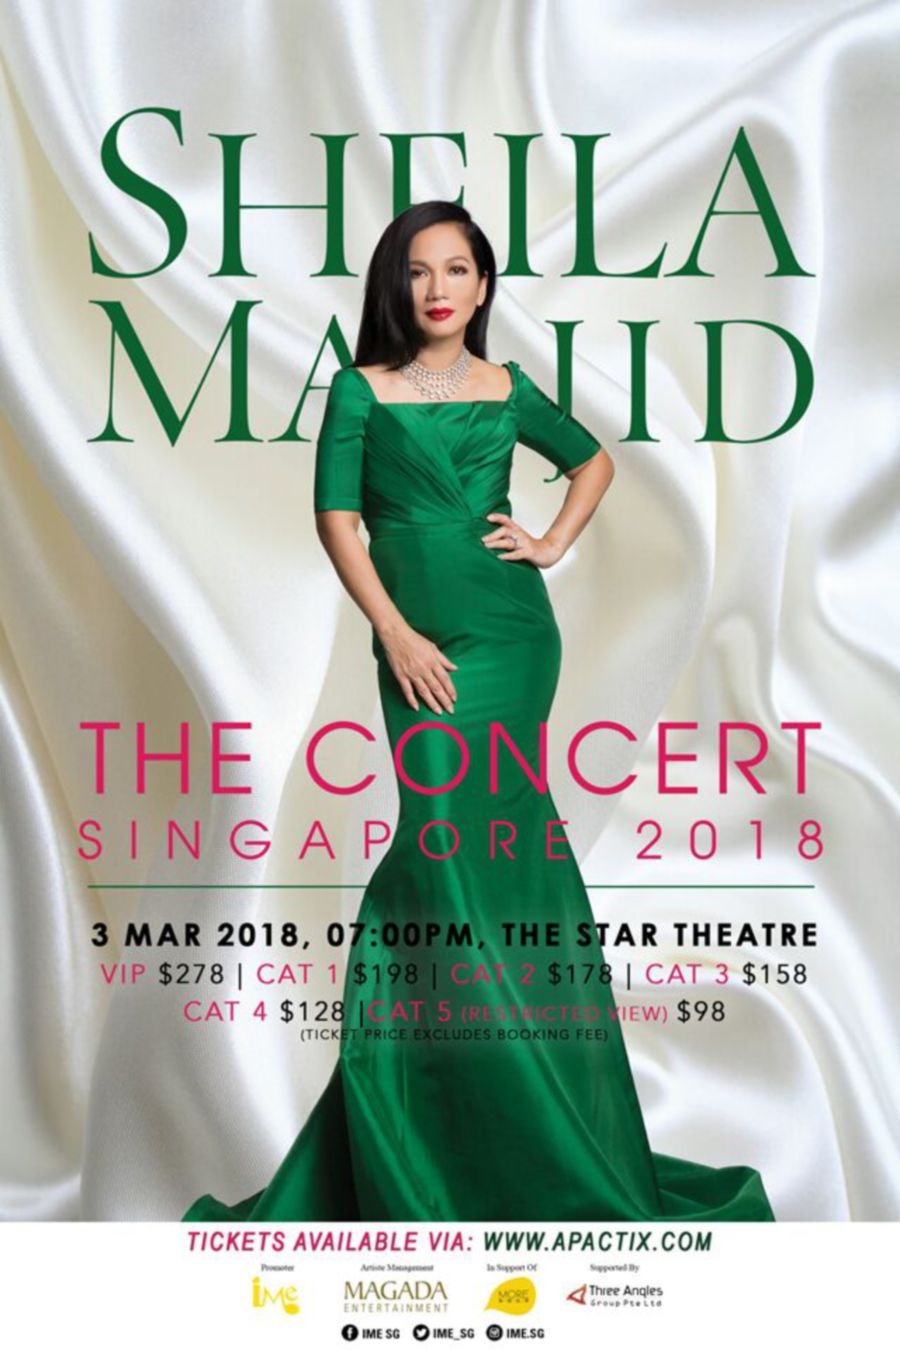 Sheila Majid concert in Singapore on March 3   New Straits